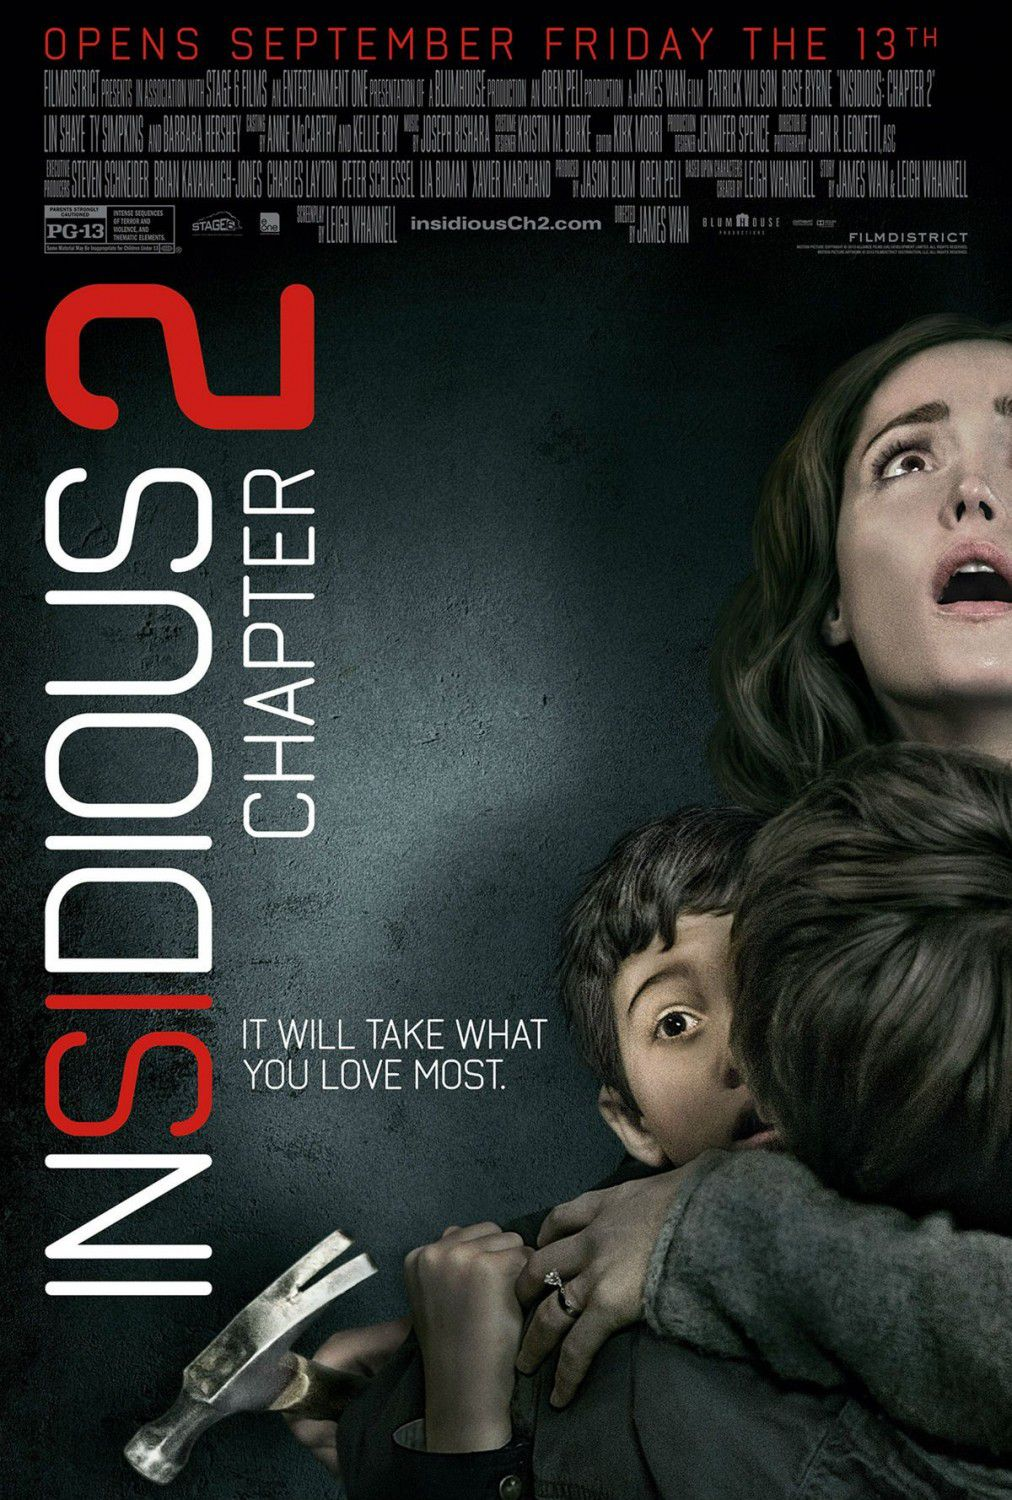 Insidious chapter 2 - it will take what you love most - horror poster